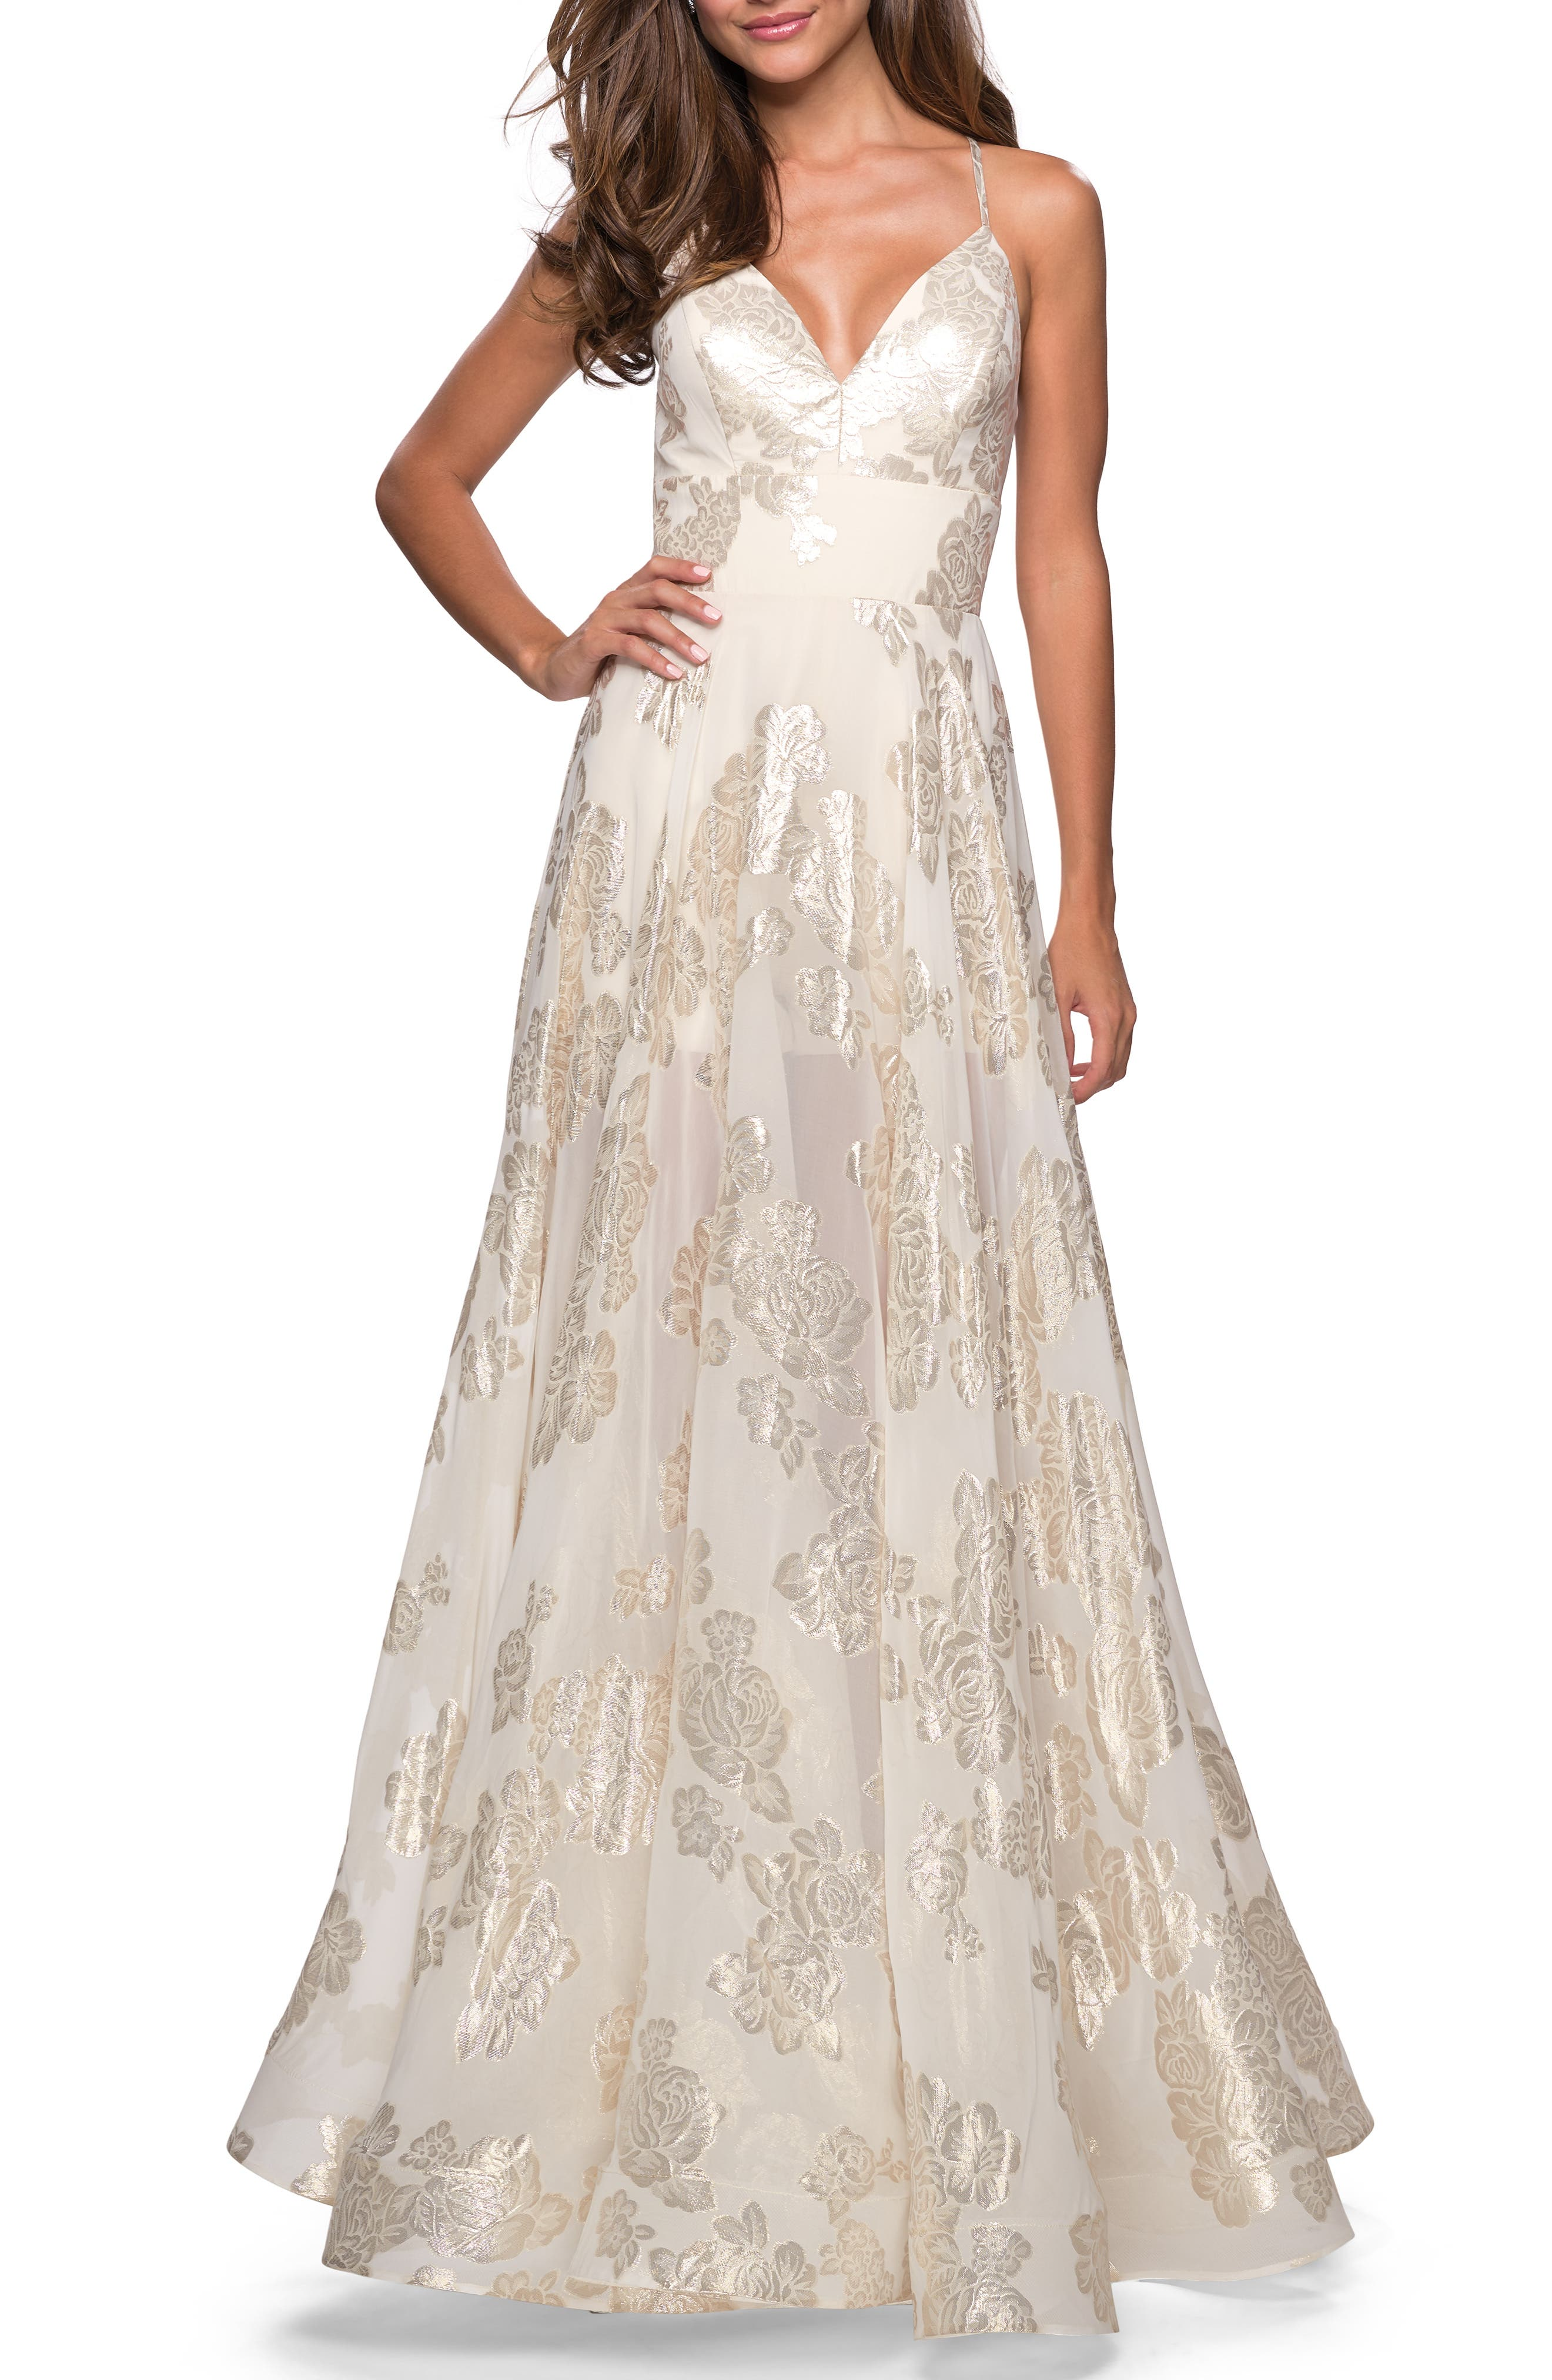 La Femme Floral Chiffon Jacquard Evening Dress, Ivory